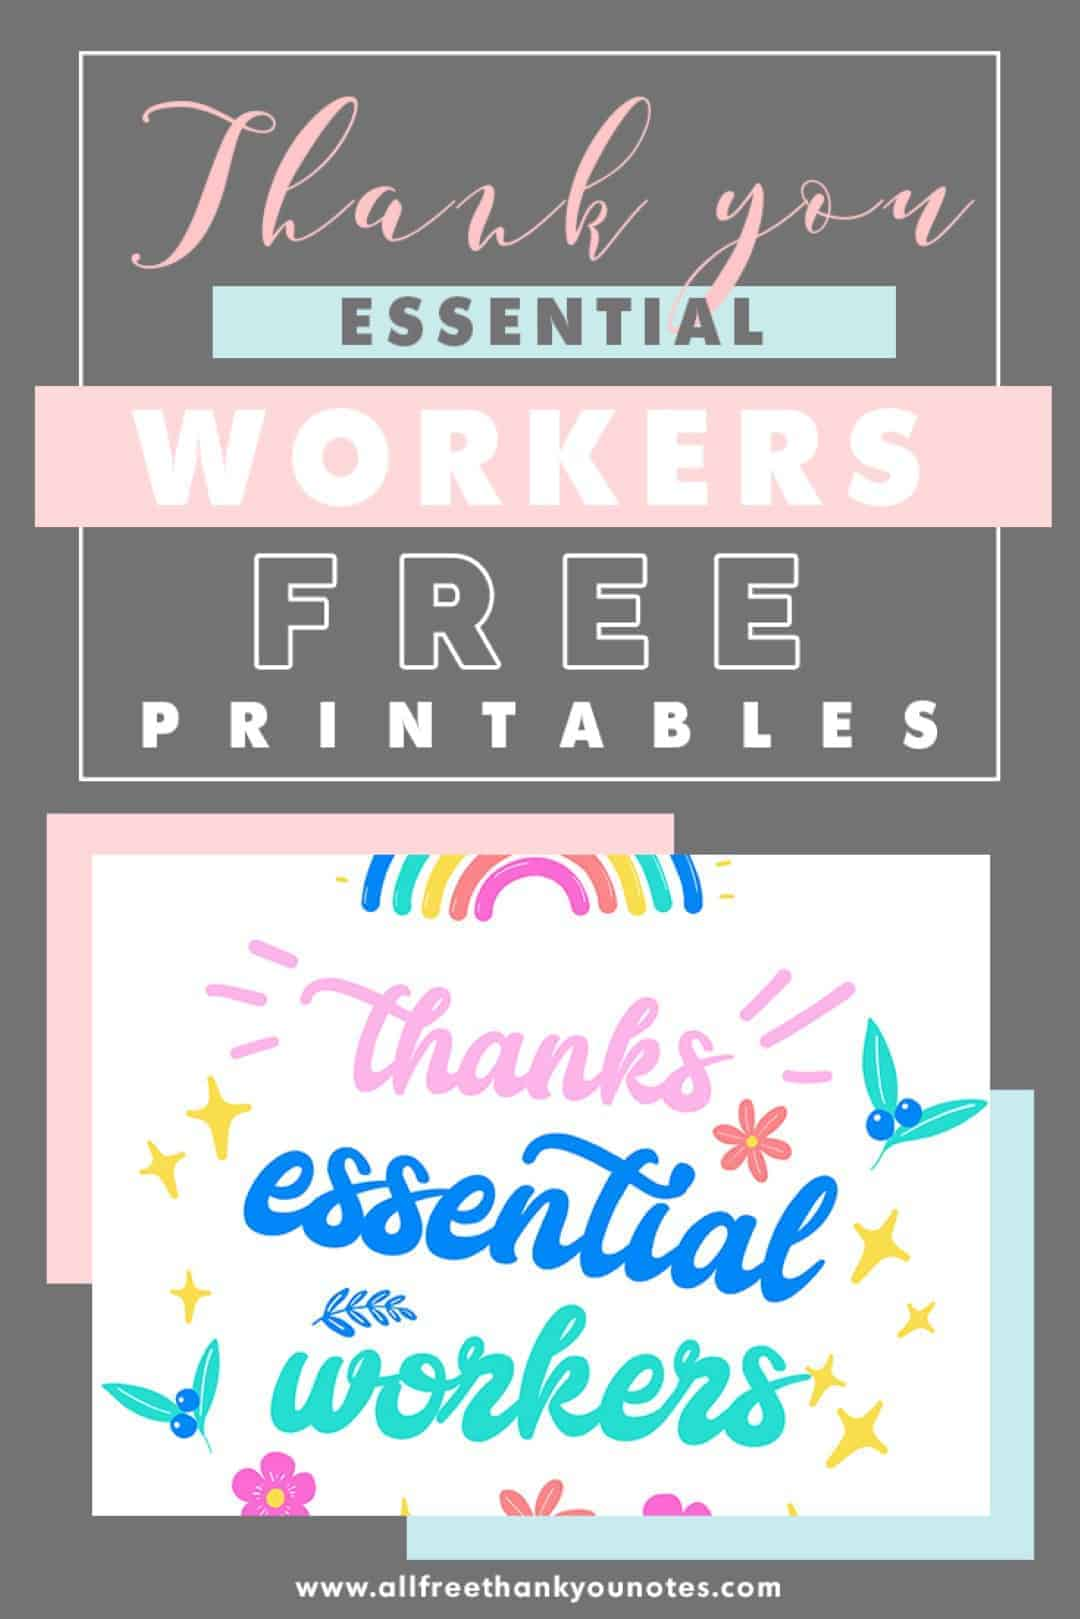 Thank you essential workers free printables